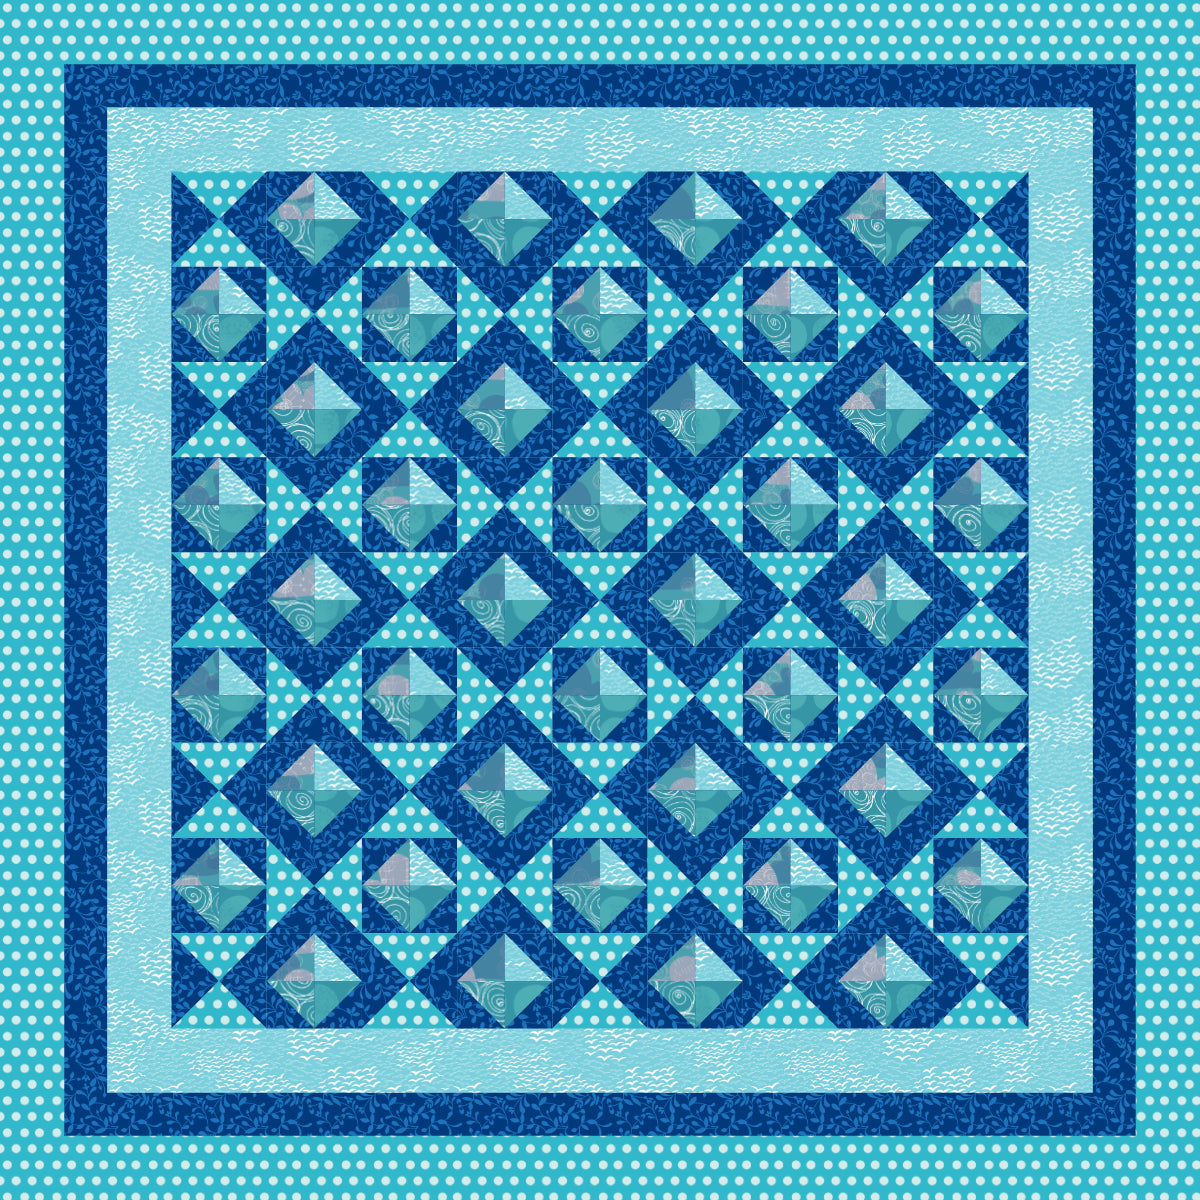 Ocean polka waves - 56 x 56 Ready-To-Quilt Fabric Panel